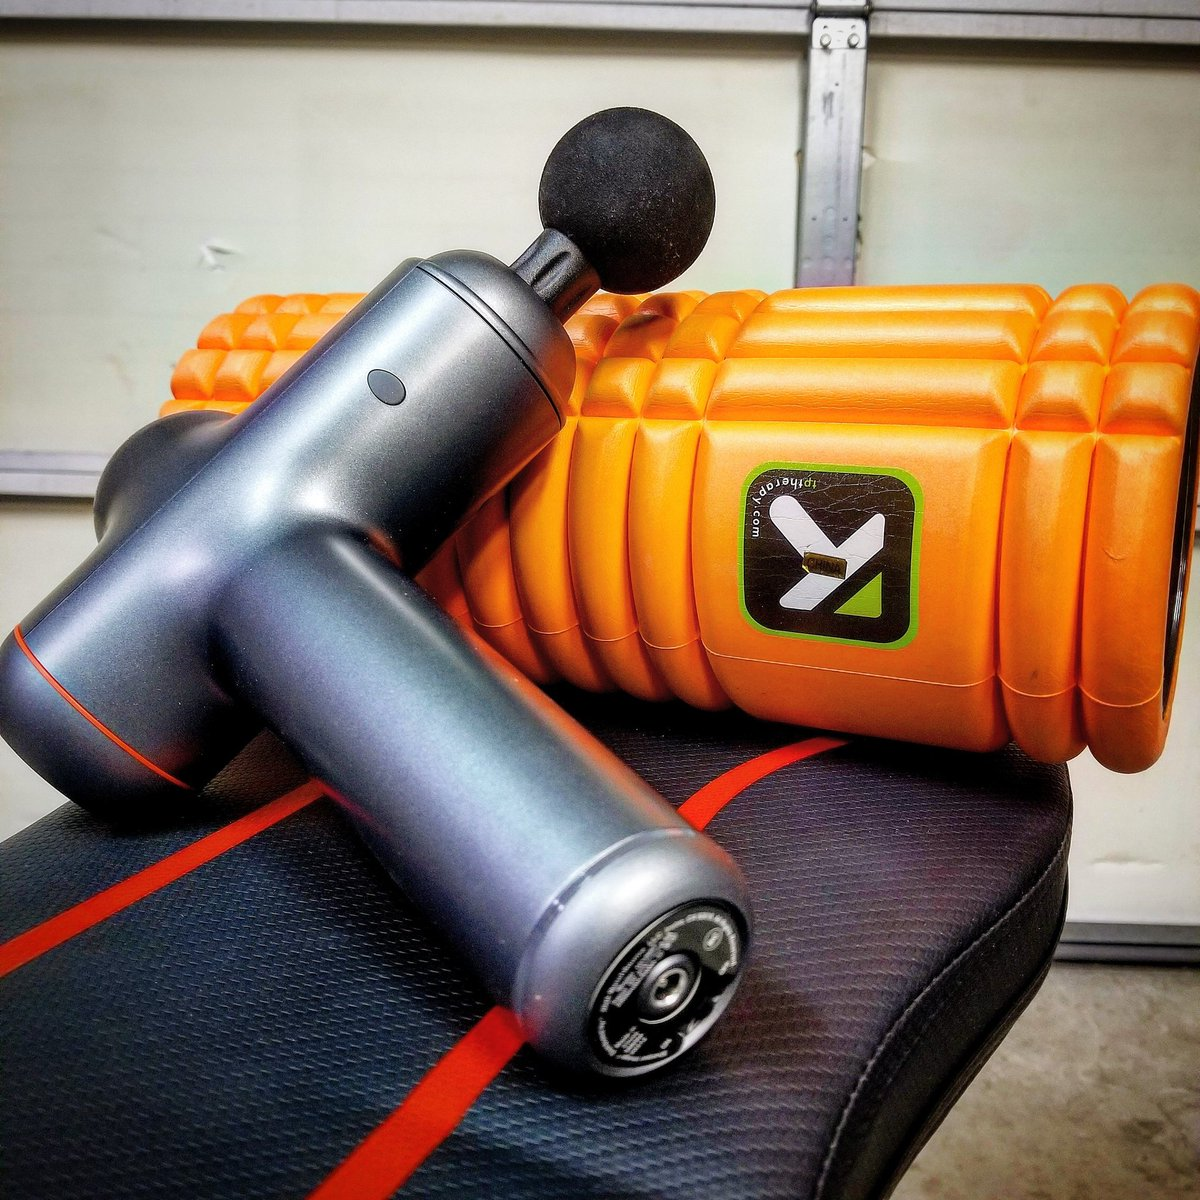 New level of workouts require a new level of recovery. 💪🏽  #RecoveryDay #Recovery #SMR #TriggerPoint #Workout #Fitness  #MotivationMonday